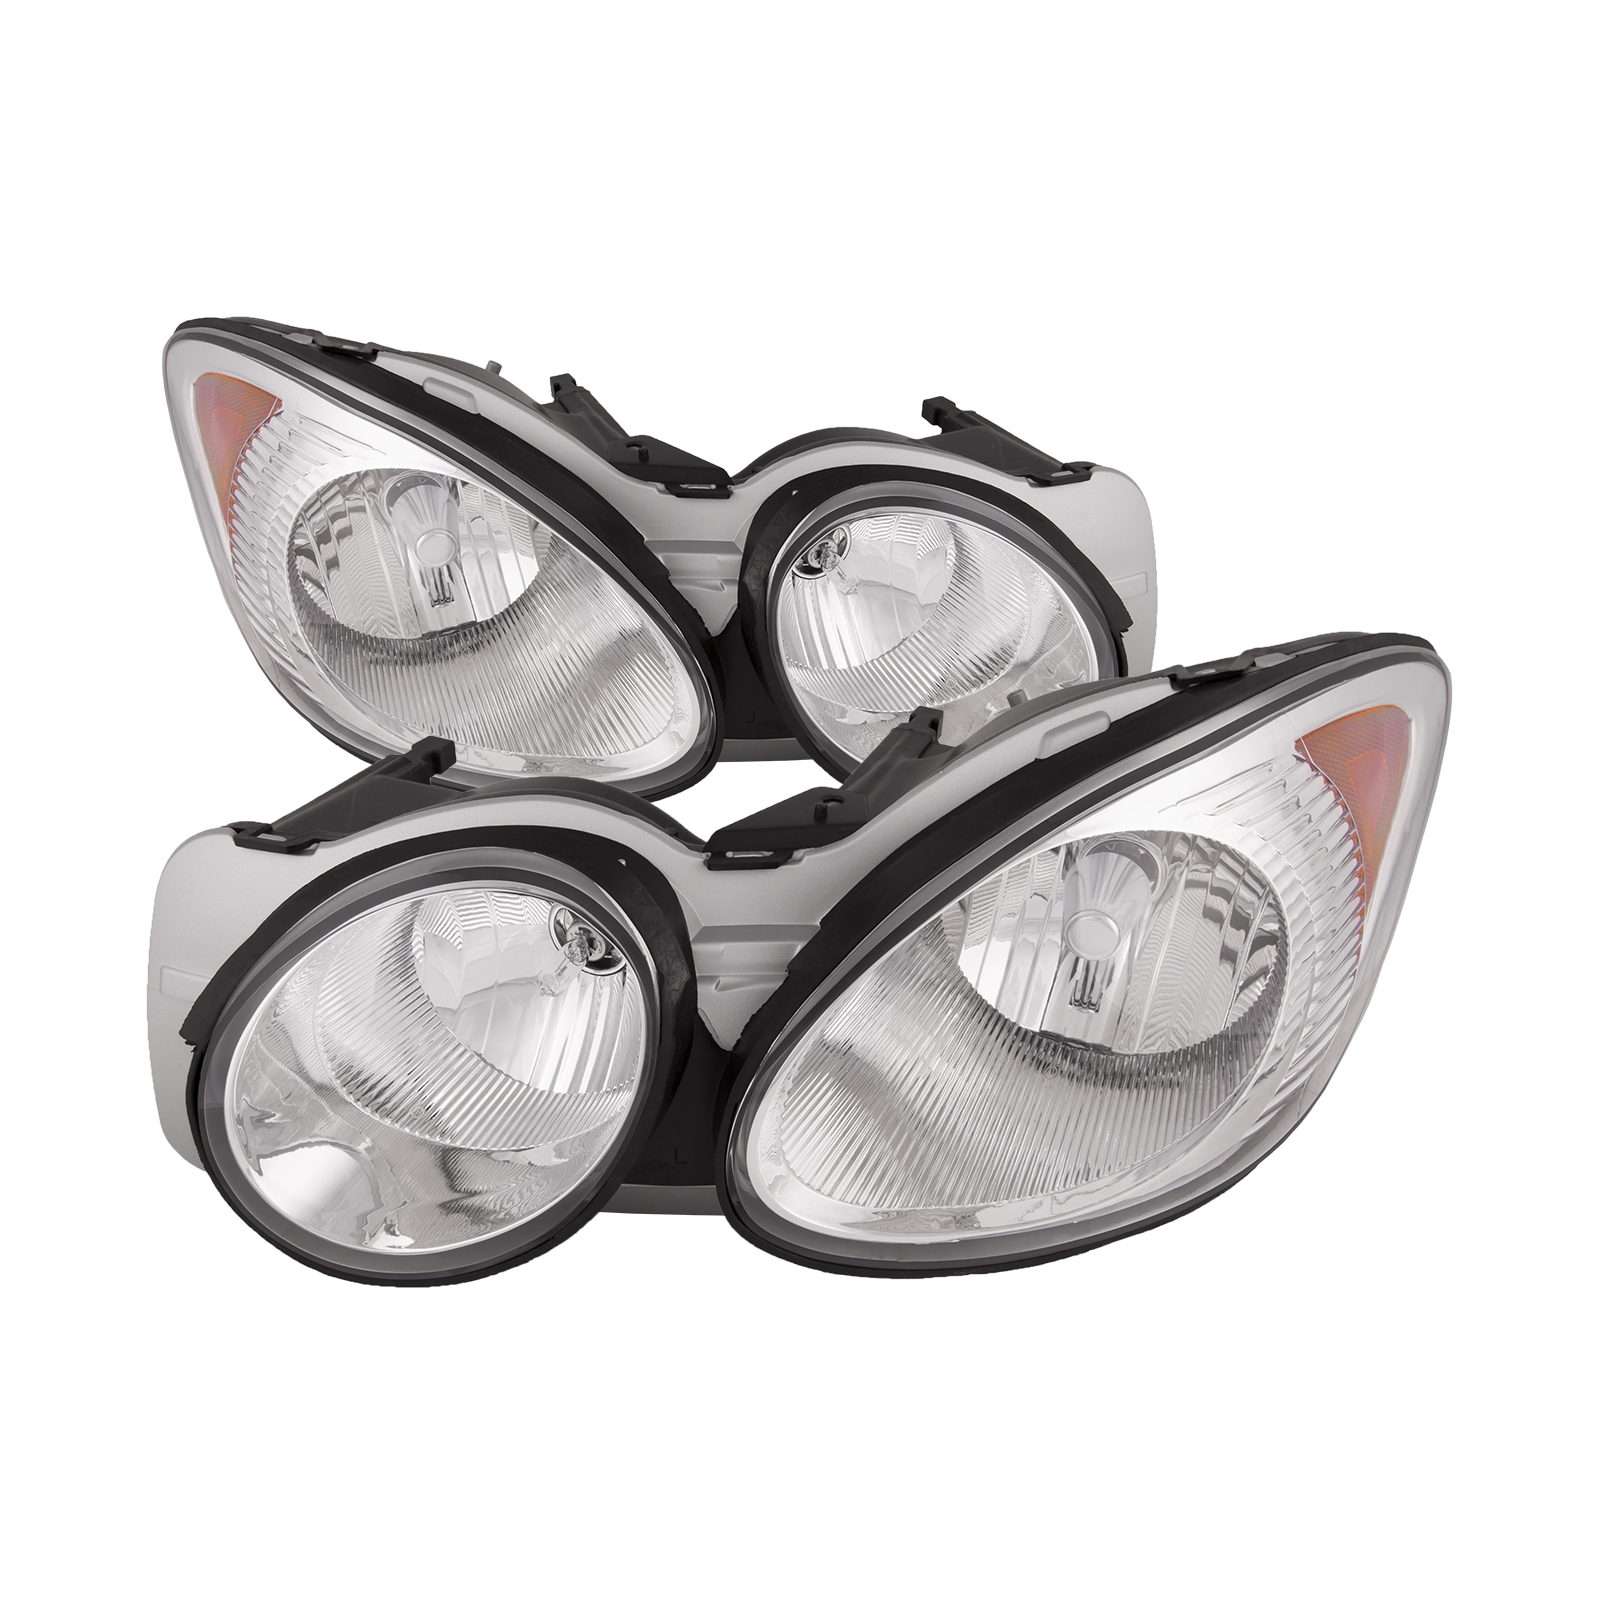 Details About Headlights Halogen Set Fits 2005 2008 Buick Lacrosse